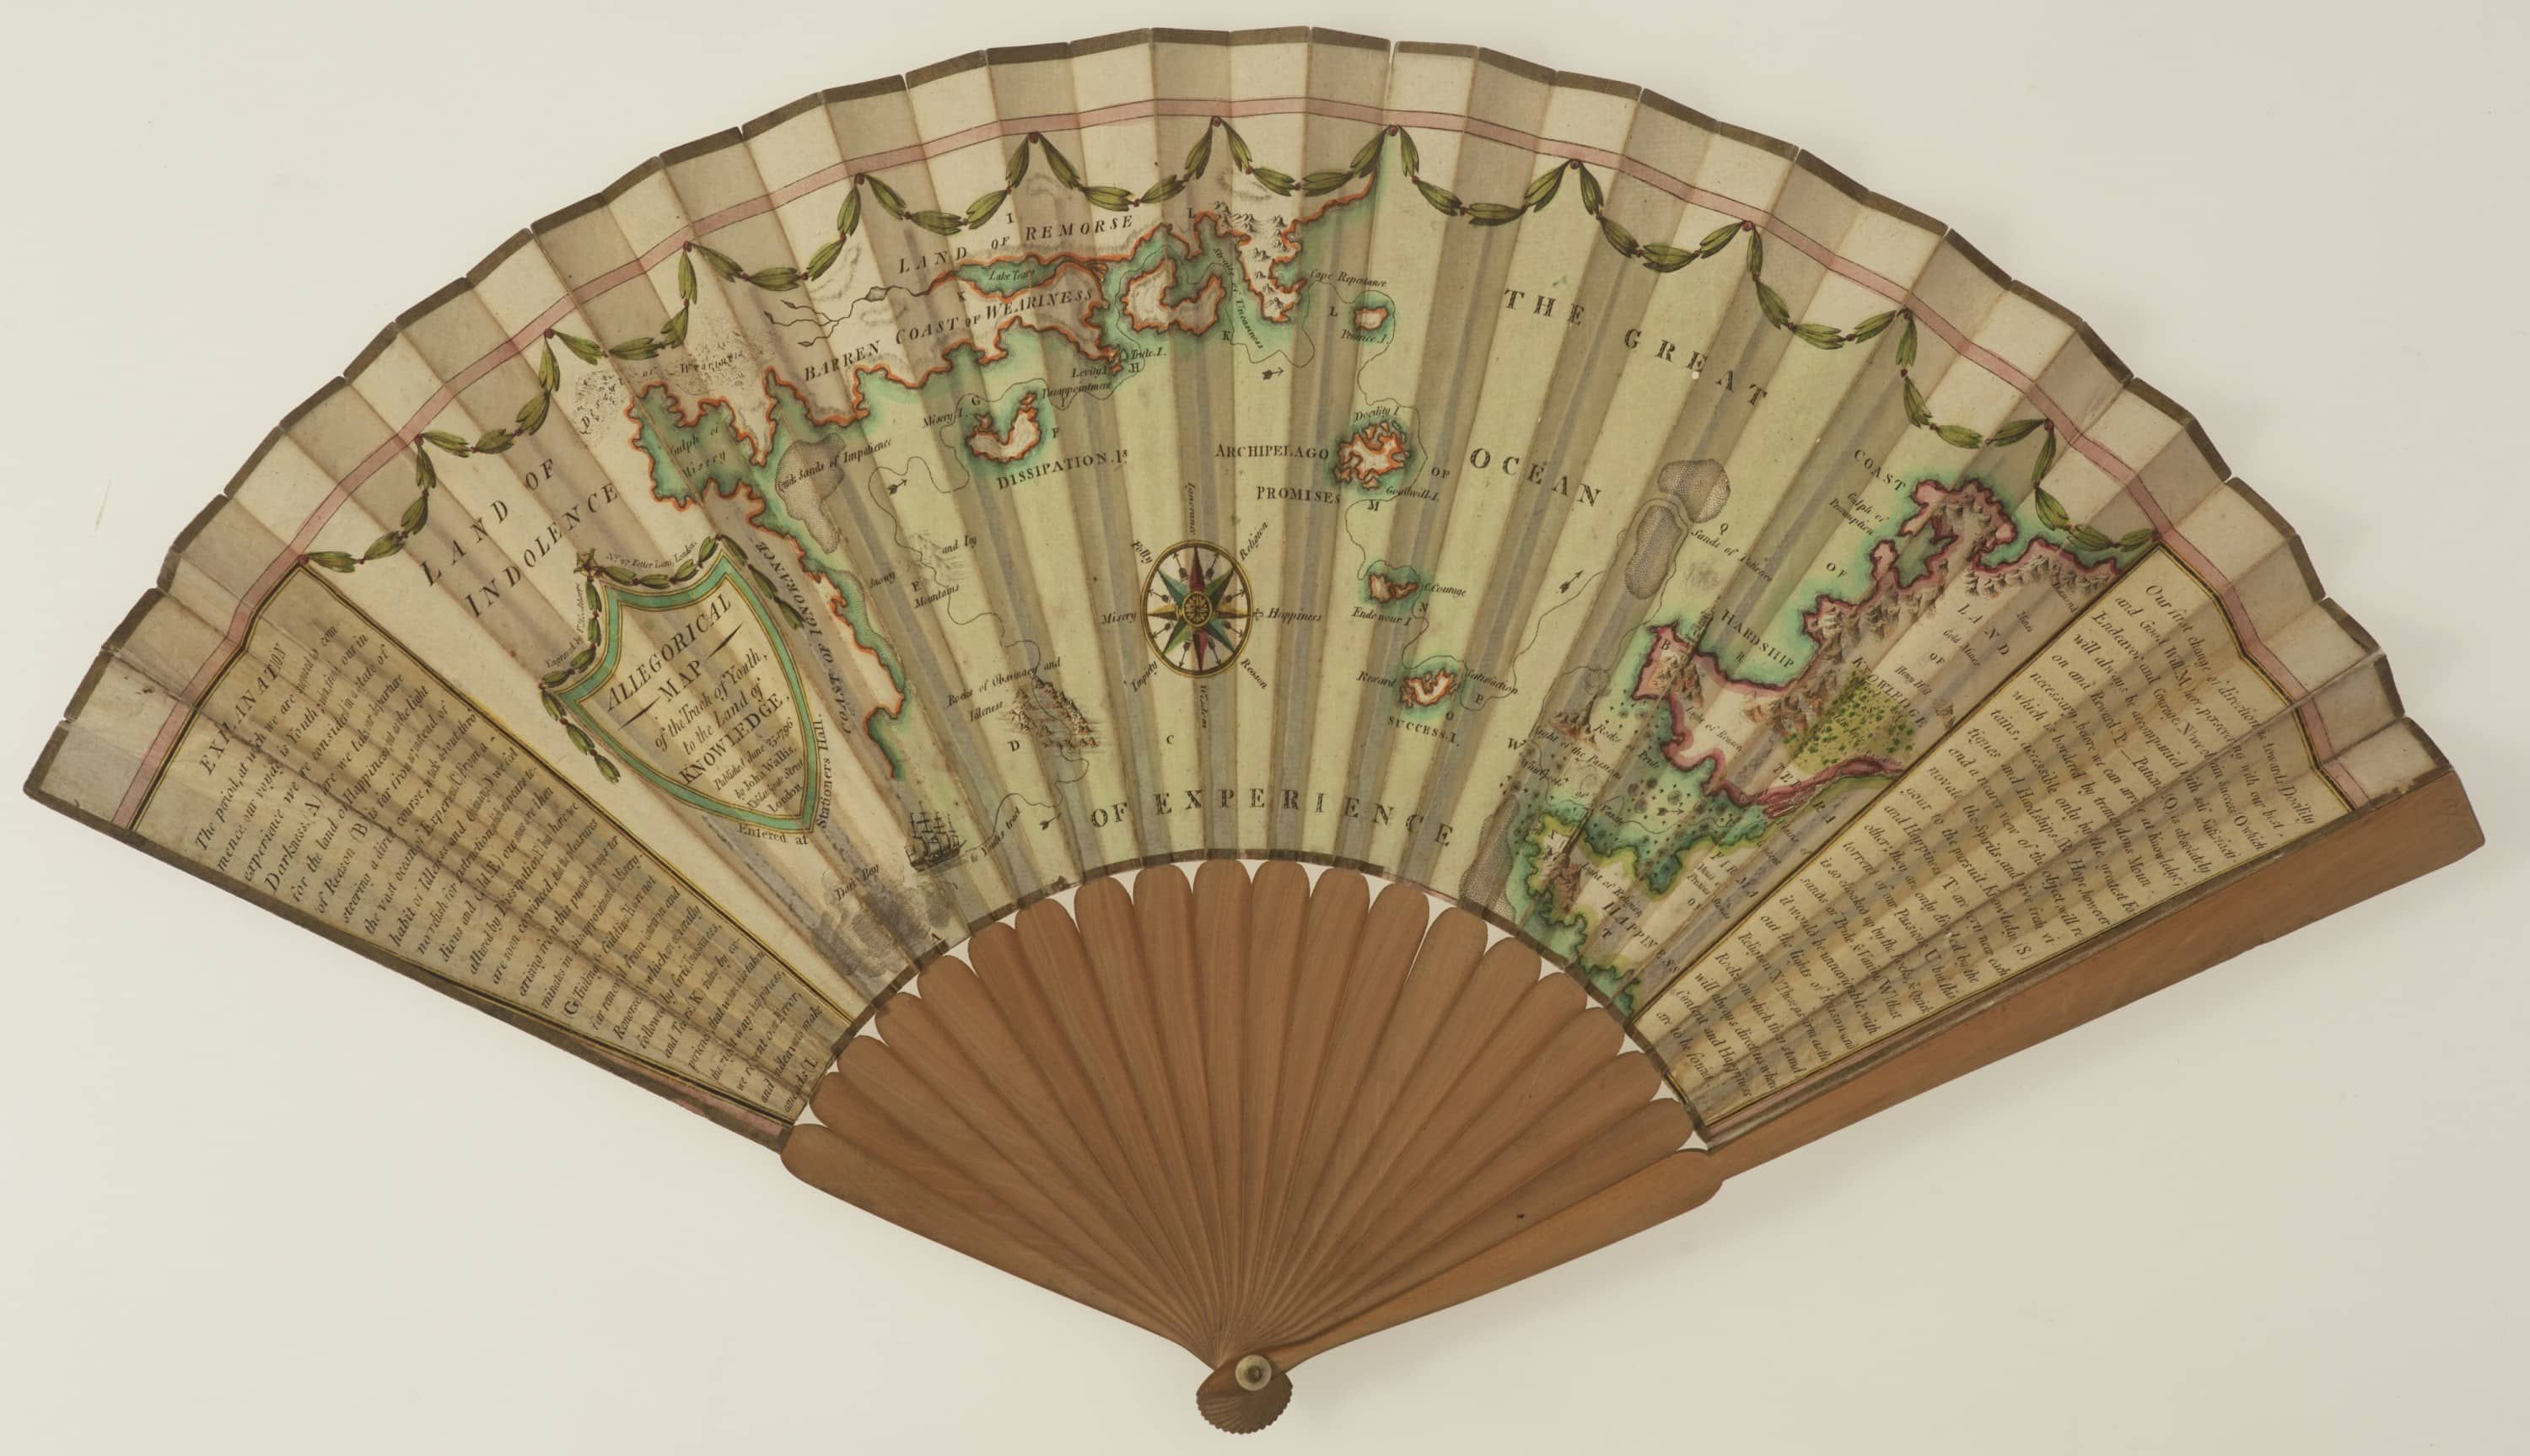 Charming allegorical map on a hand fan - Rare & Antique Maps